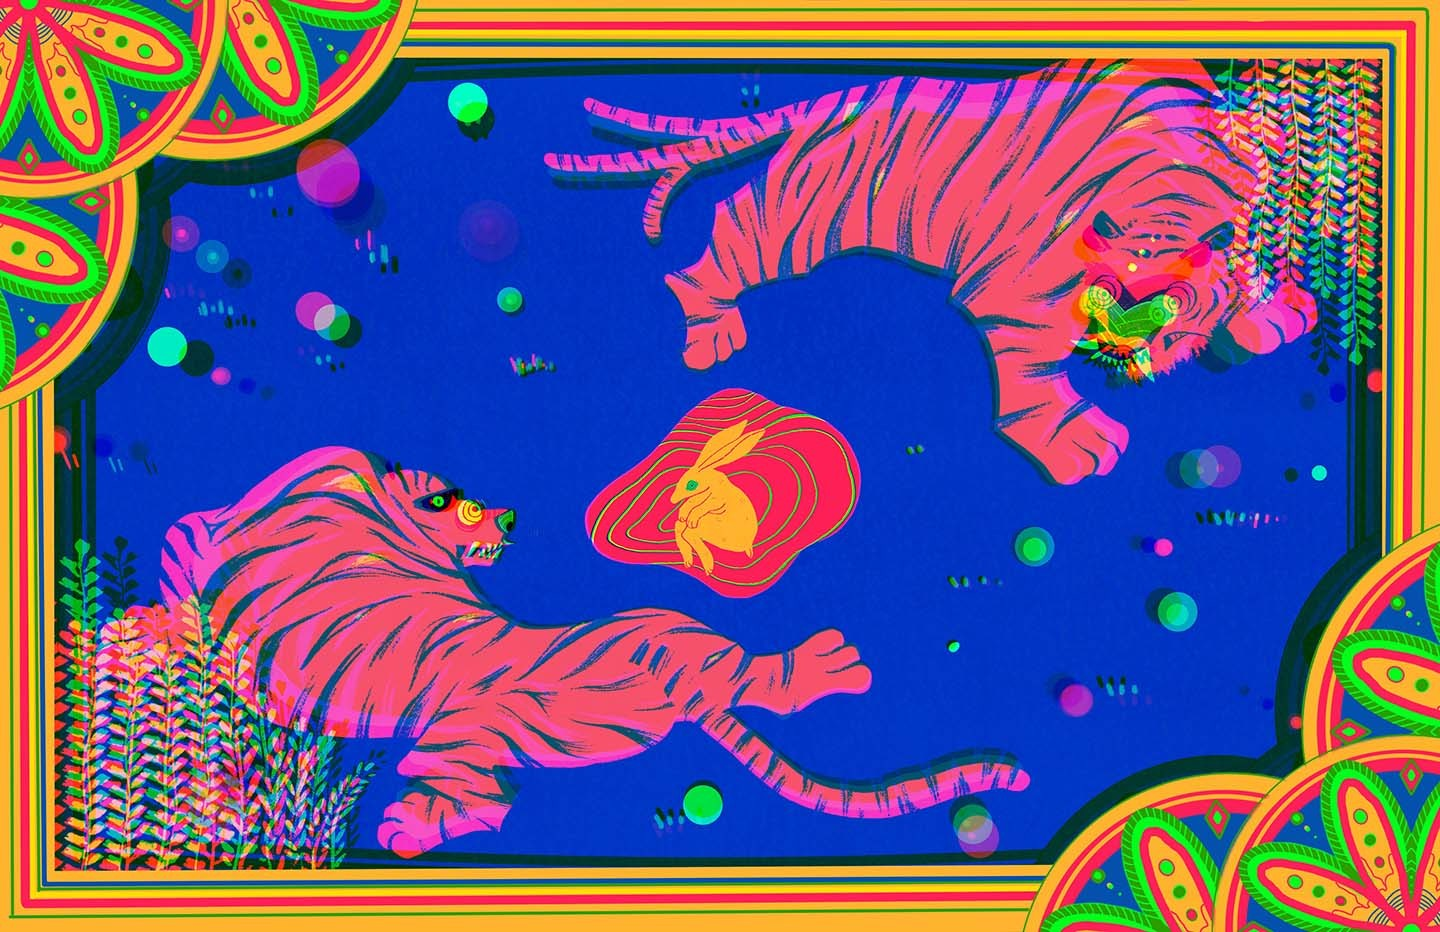 TWO TIGERS CIRCLING AROUND EACH OTHER ON A BLUE PLAIN. A DYING RABBIT BLEEDS OUT IN THE CENTER.